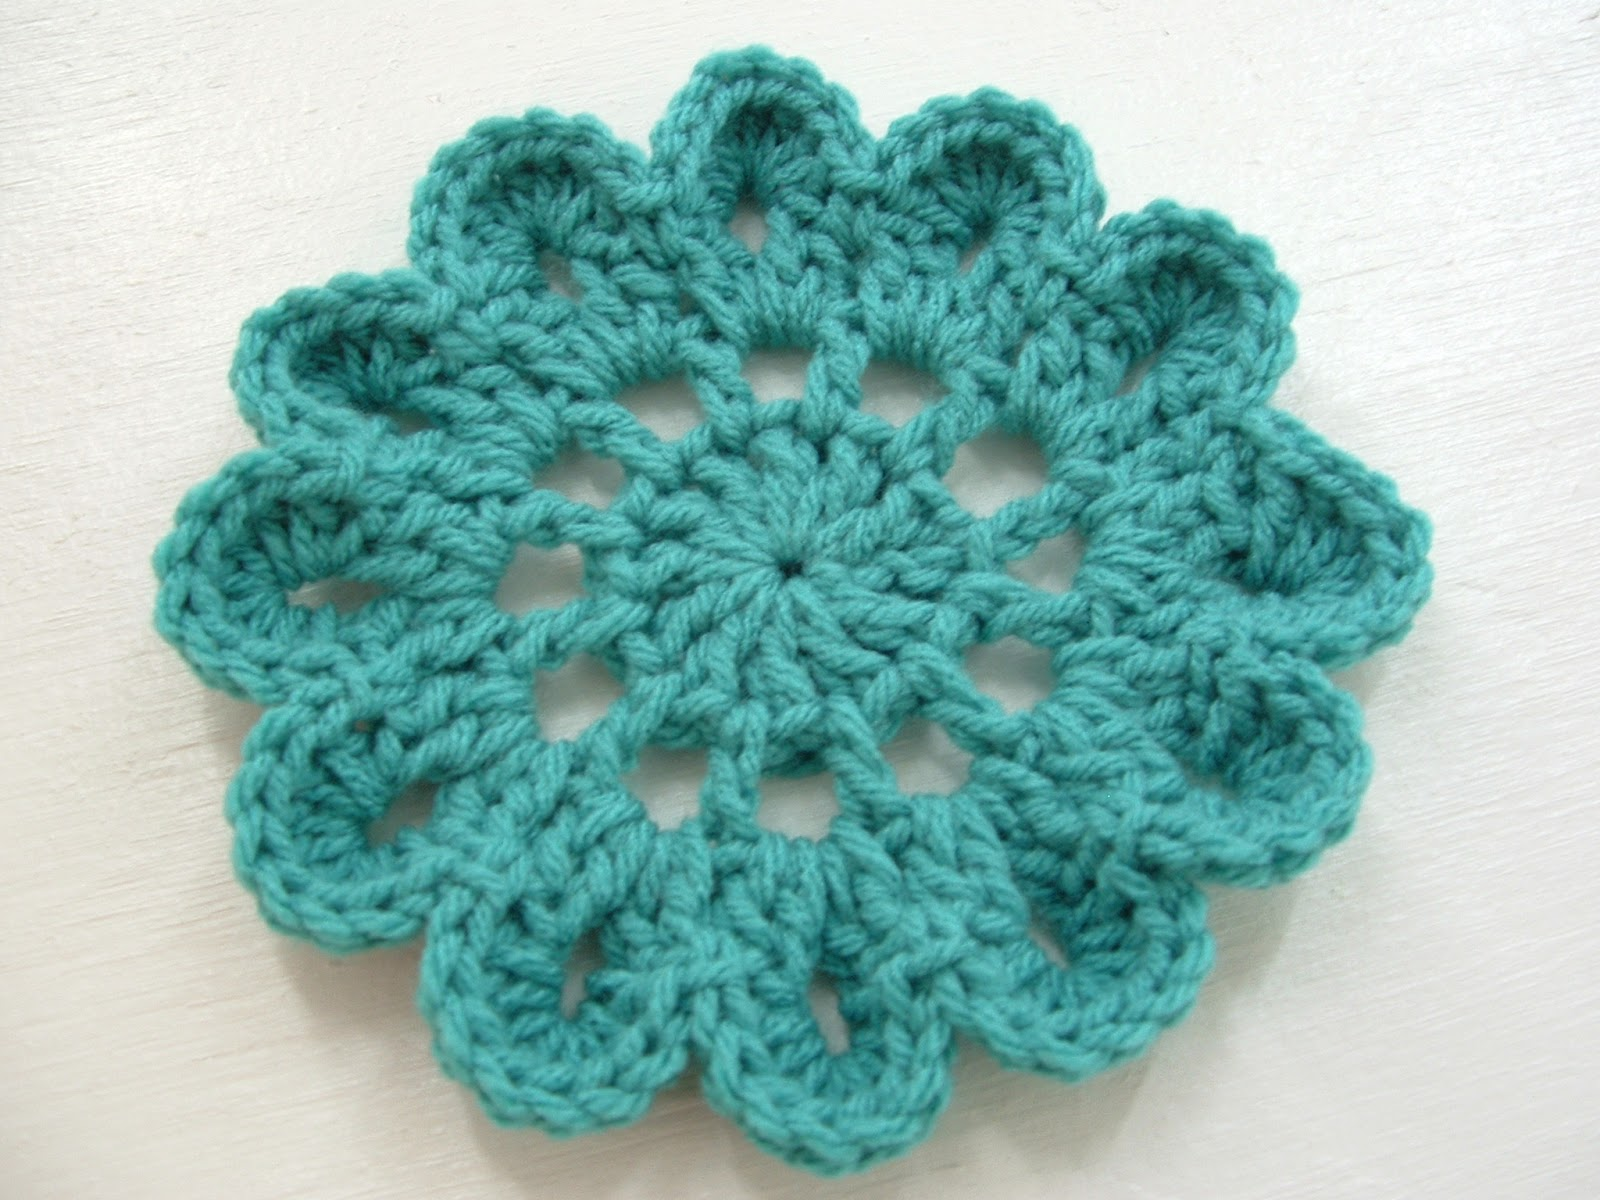 Free Crochet Pattern Japanese Flower : Would You Like Yarn With That?: Japanese Flower Motif ...